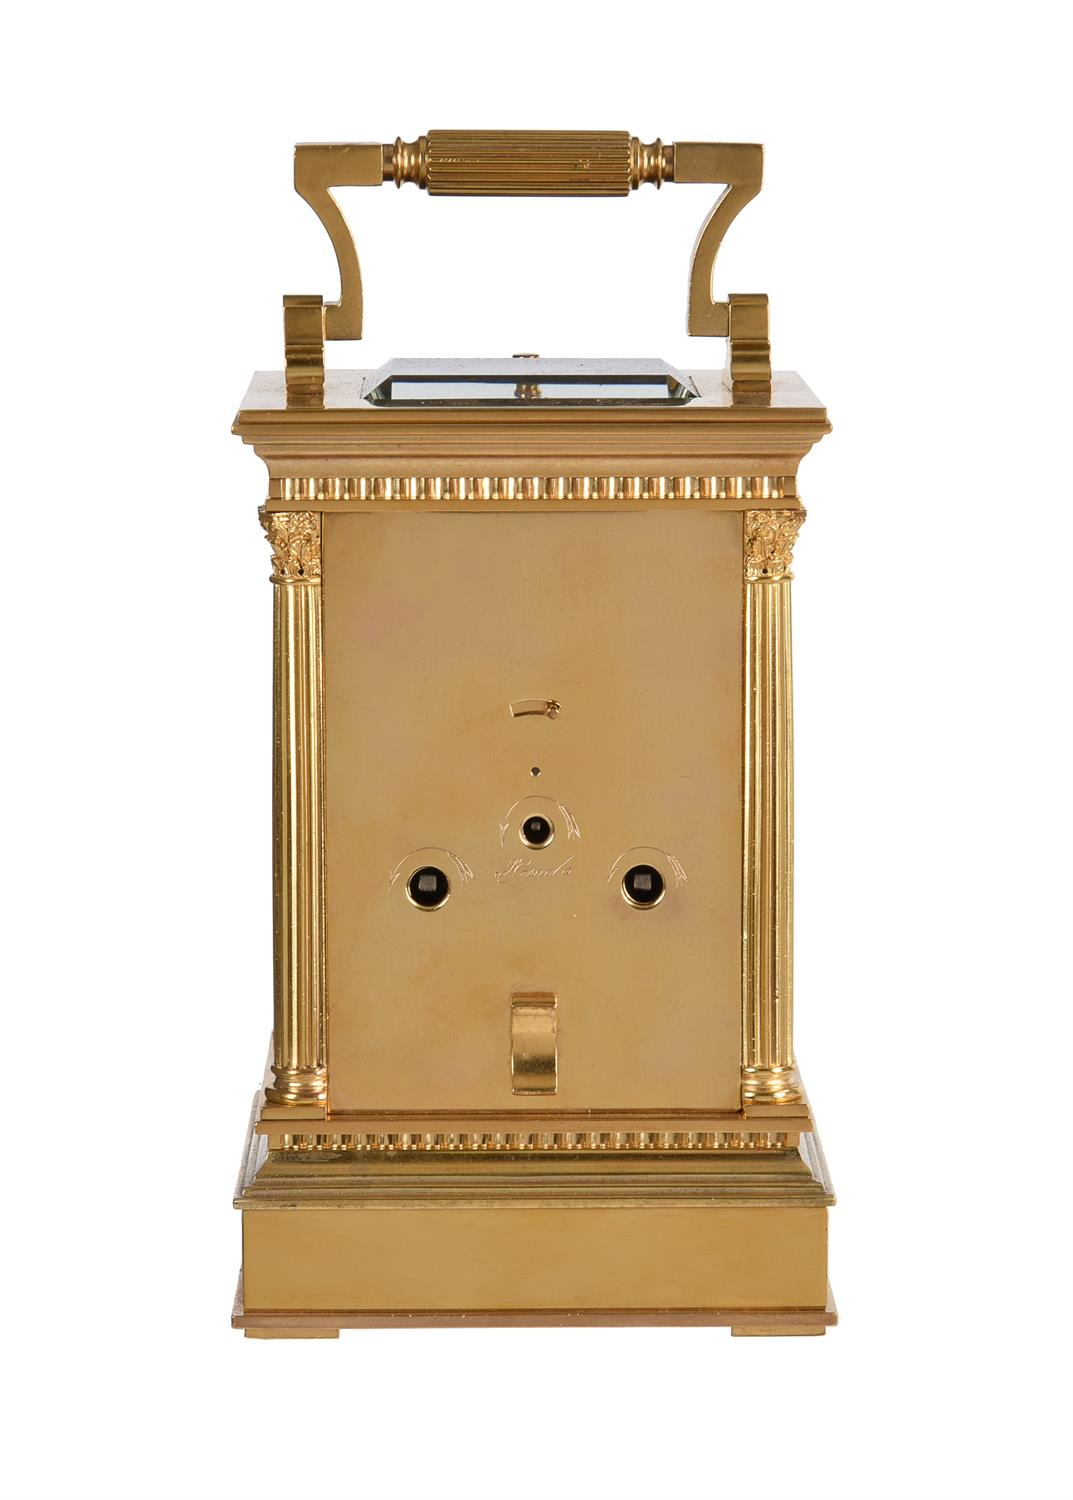 A fine French gilt brass carriage clock with painted porcelain panels and push-button repeat - Image 5 of 7